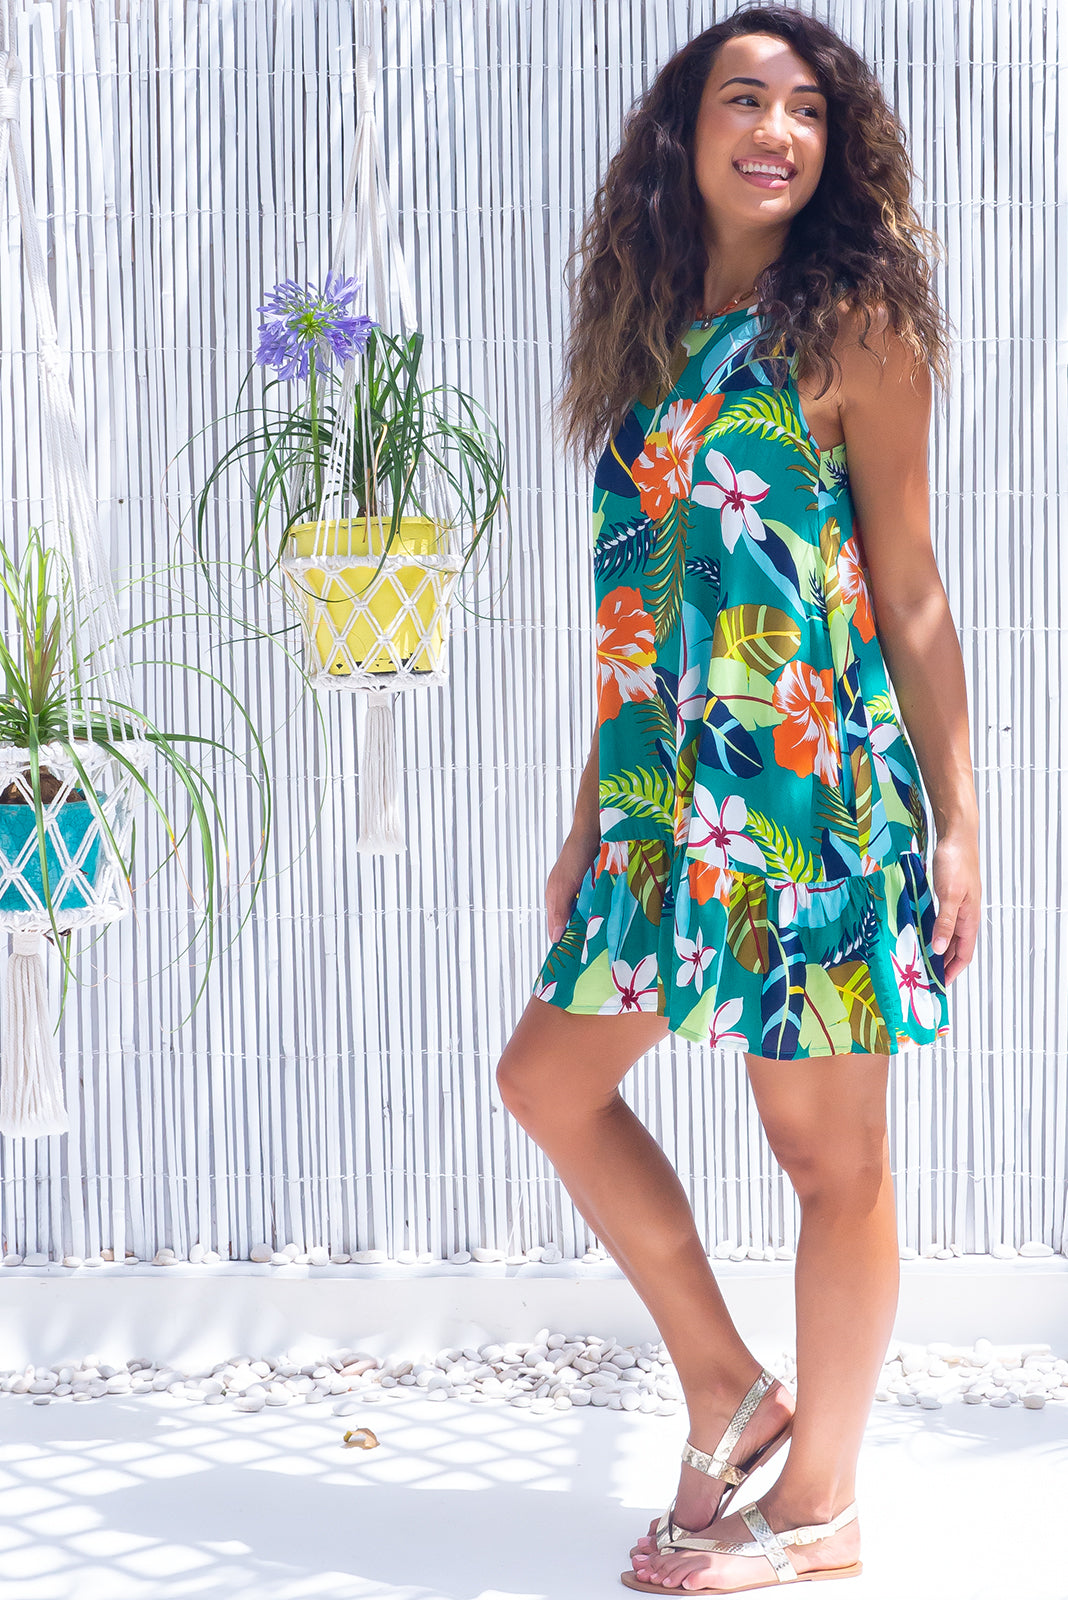 The Cloudland Jade Jungle Swing Dress will take you an tropical island, featuring back neck tie, breezy skirt, side pockets and 100% rayon in green base with large tropical print.